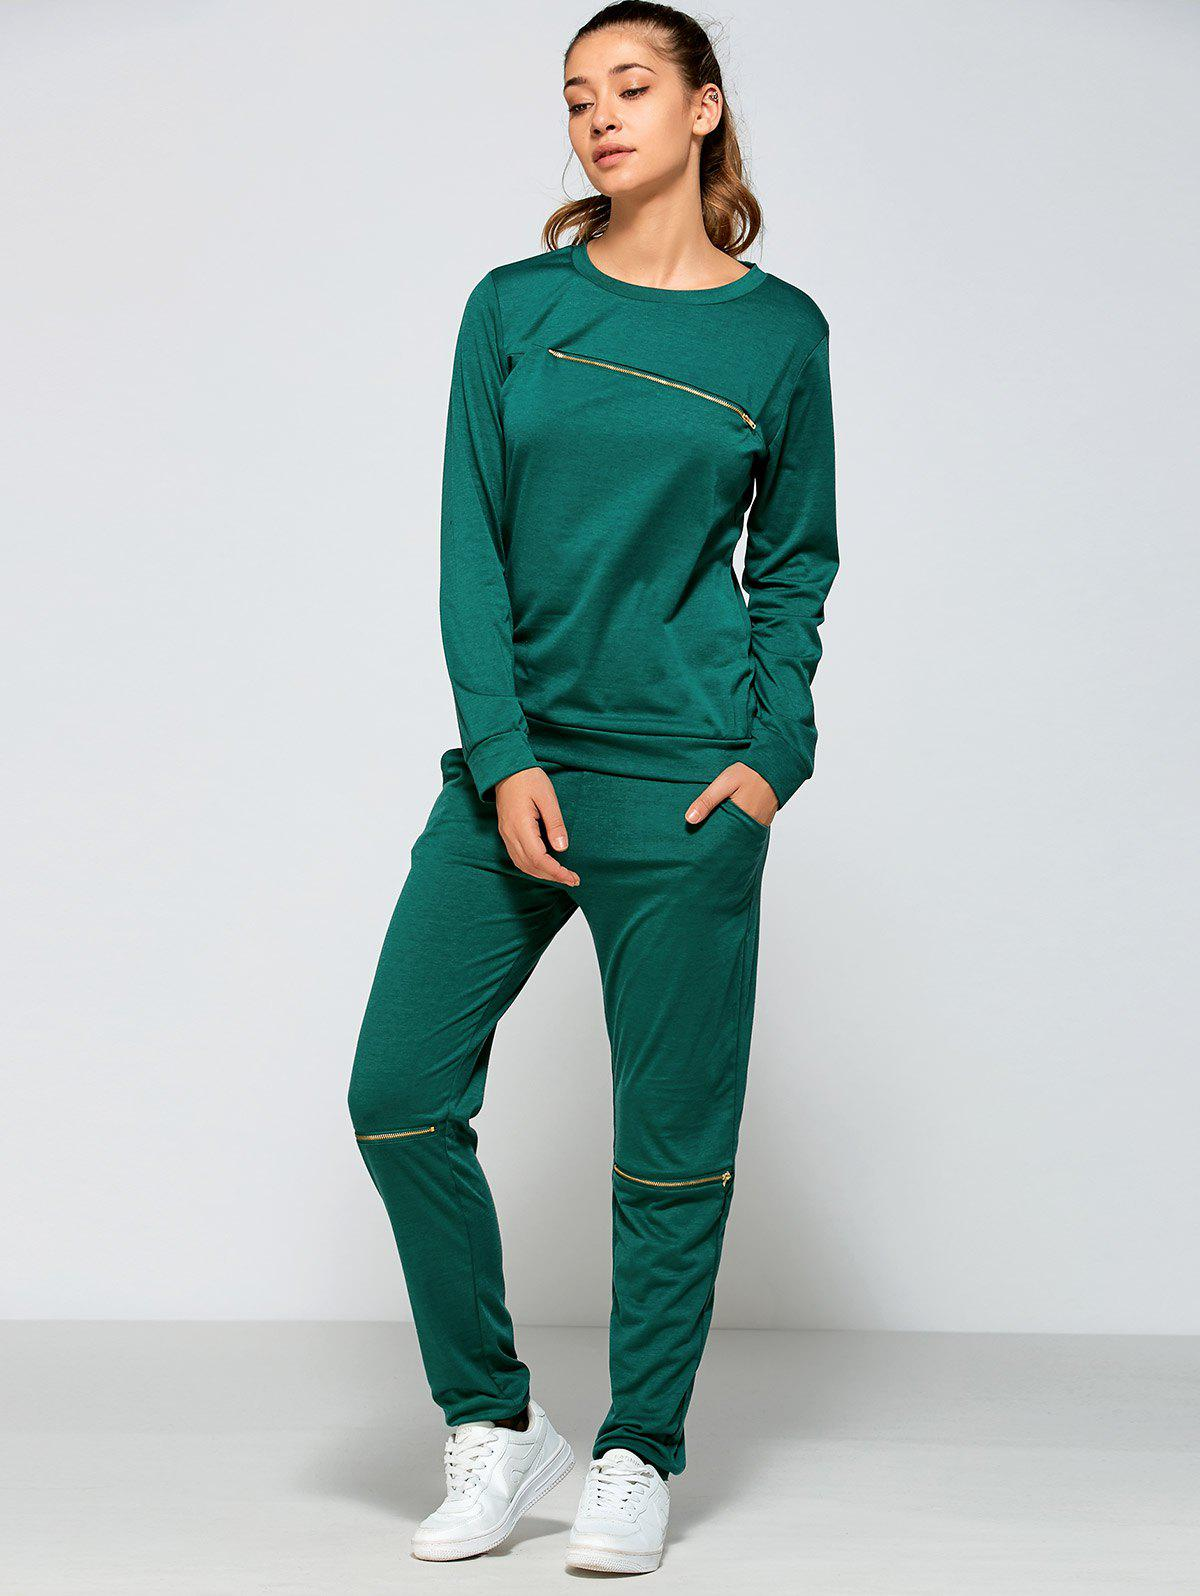 Cheap Zippered Sweatshirt and Pants with Pocket